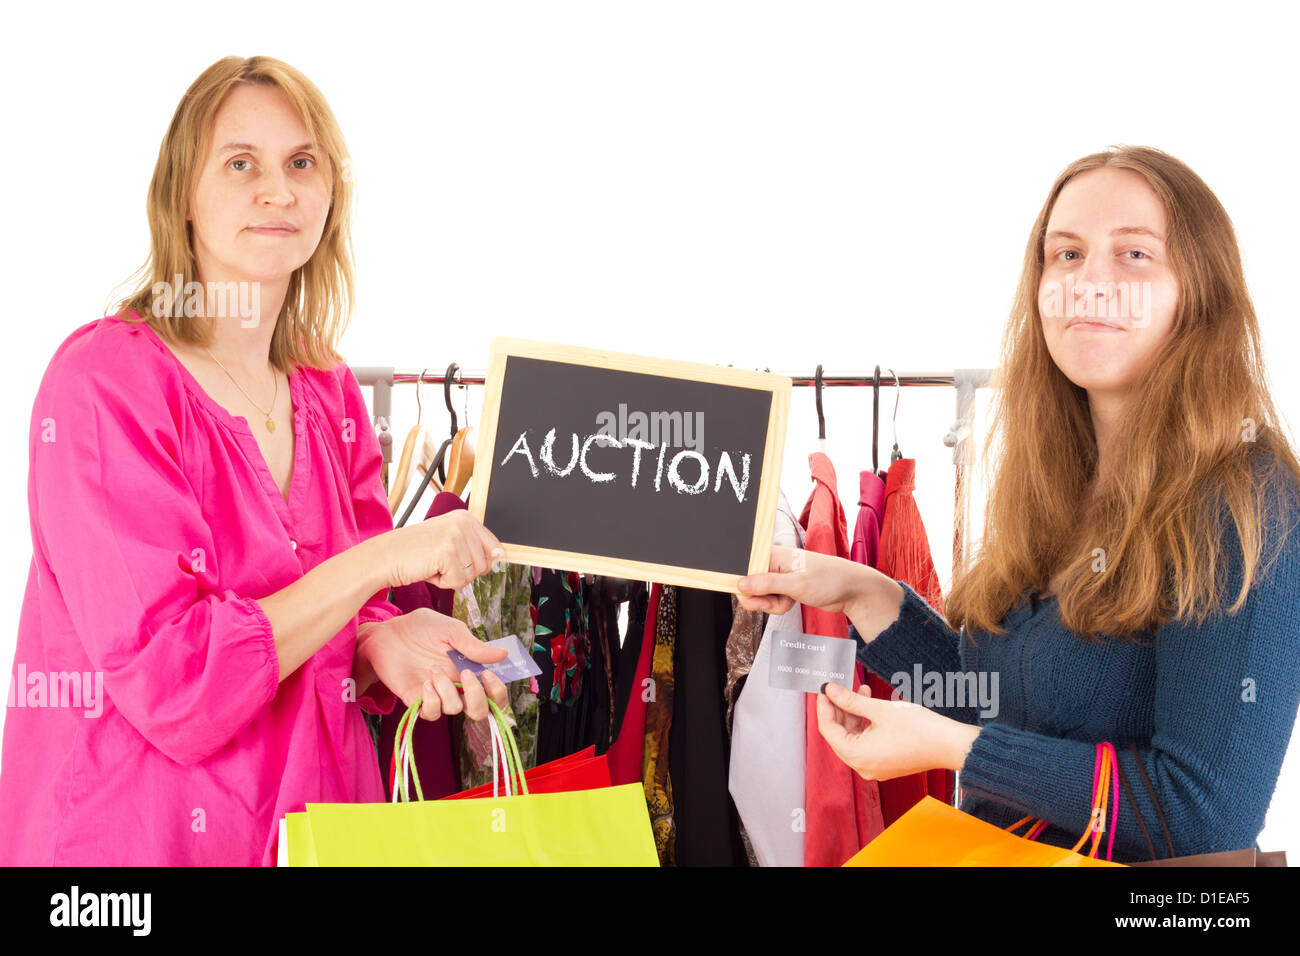 People on shopping tour: auction - Stock Image